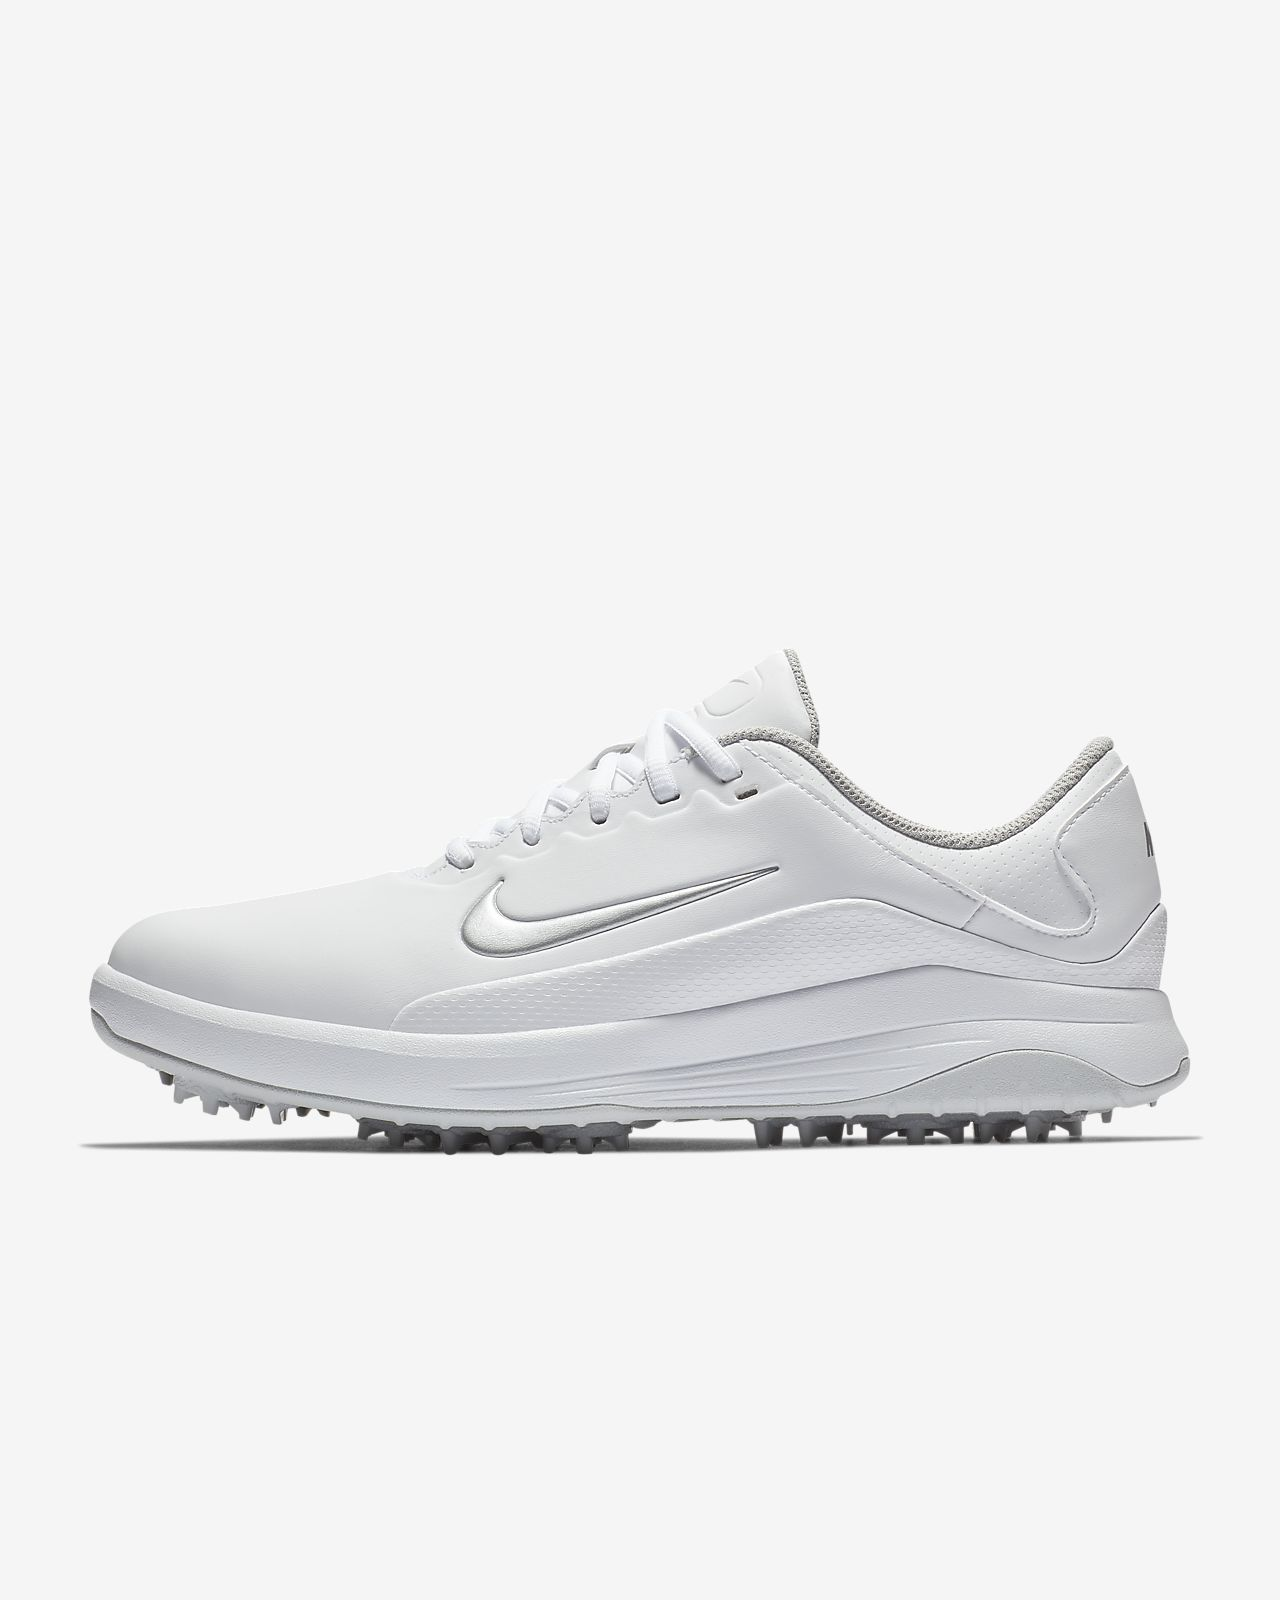 119046b718dd3 Nike Vapor Men's Golf Shoe. Nike.com